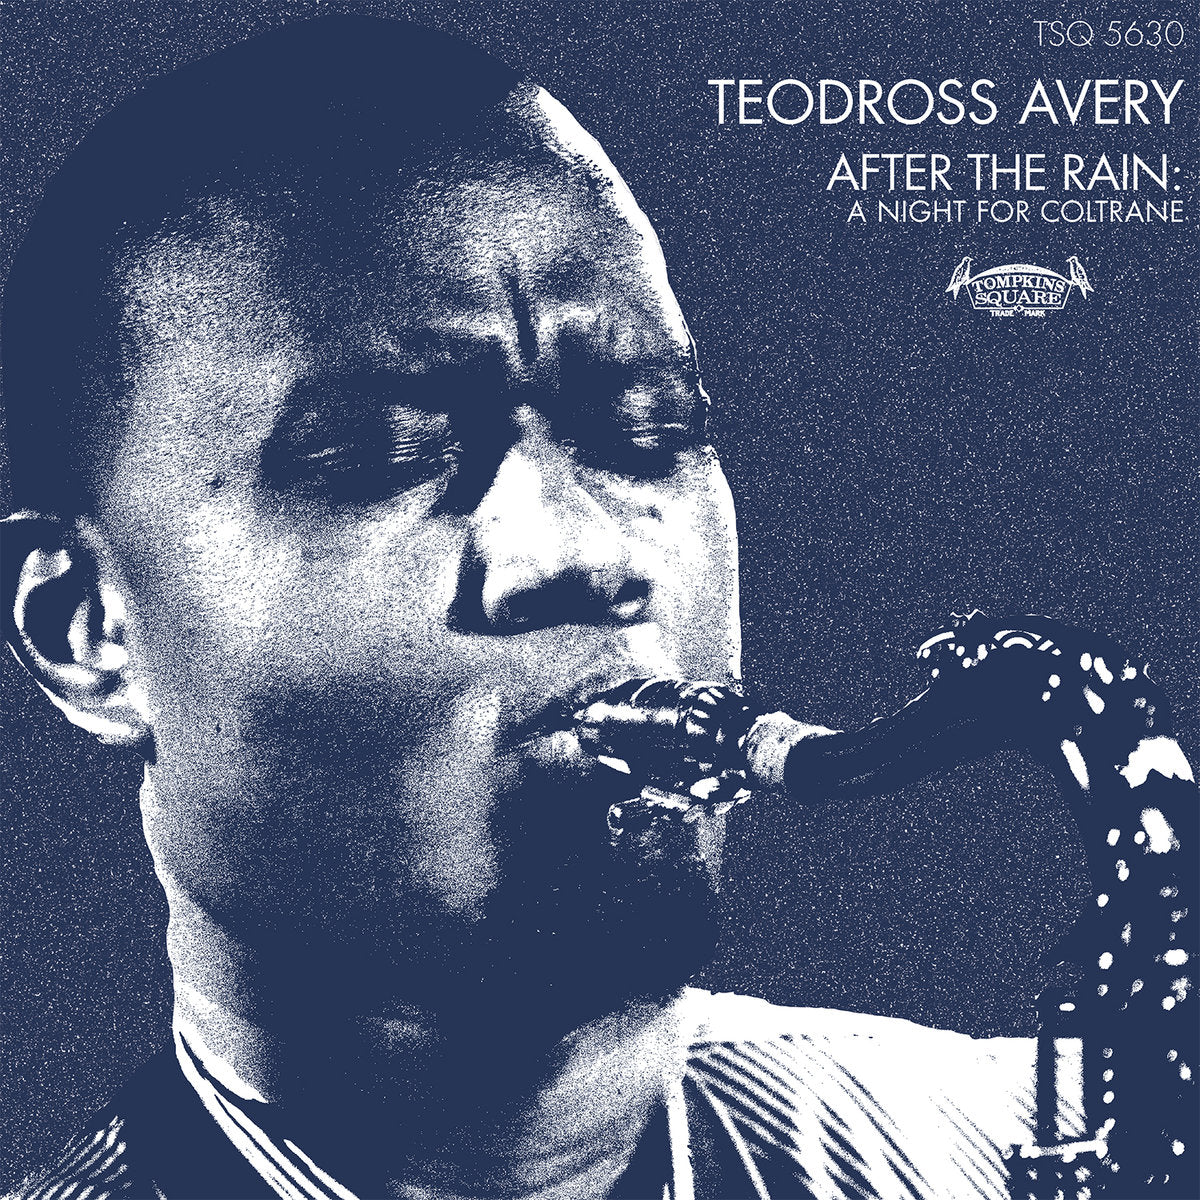 Teodross Avery - After the Rain: A Night for Coltrane LP